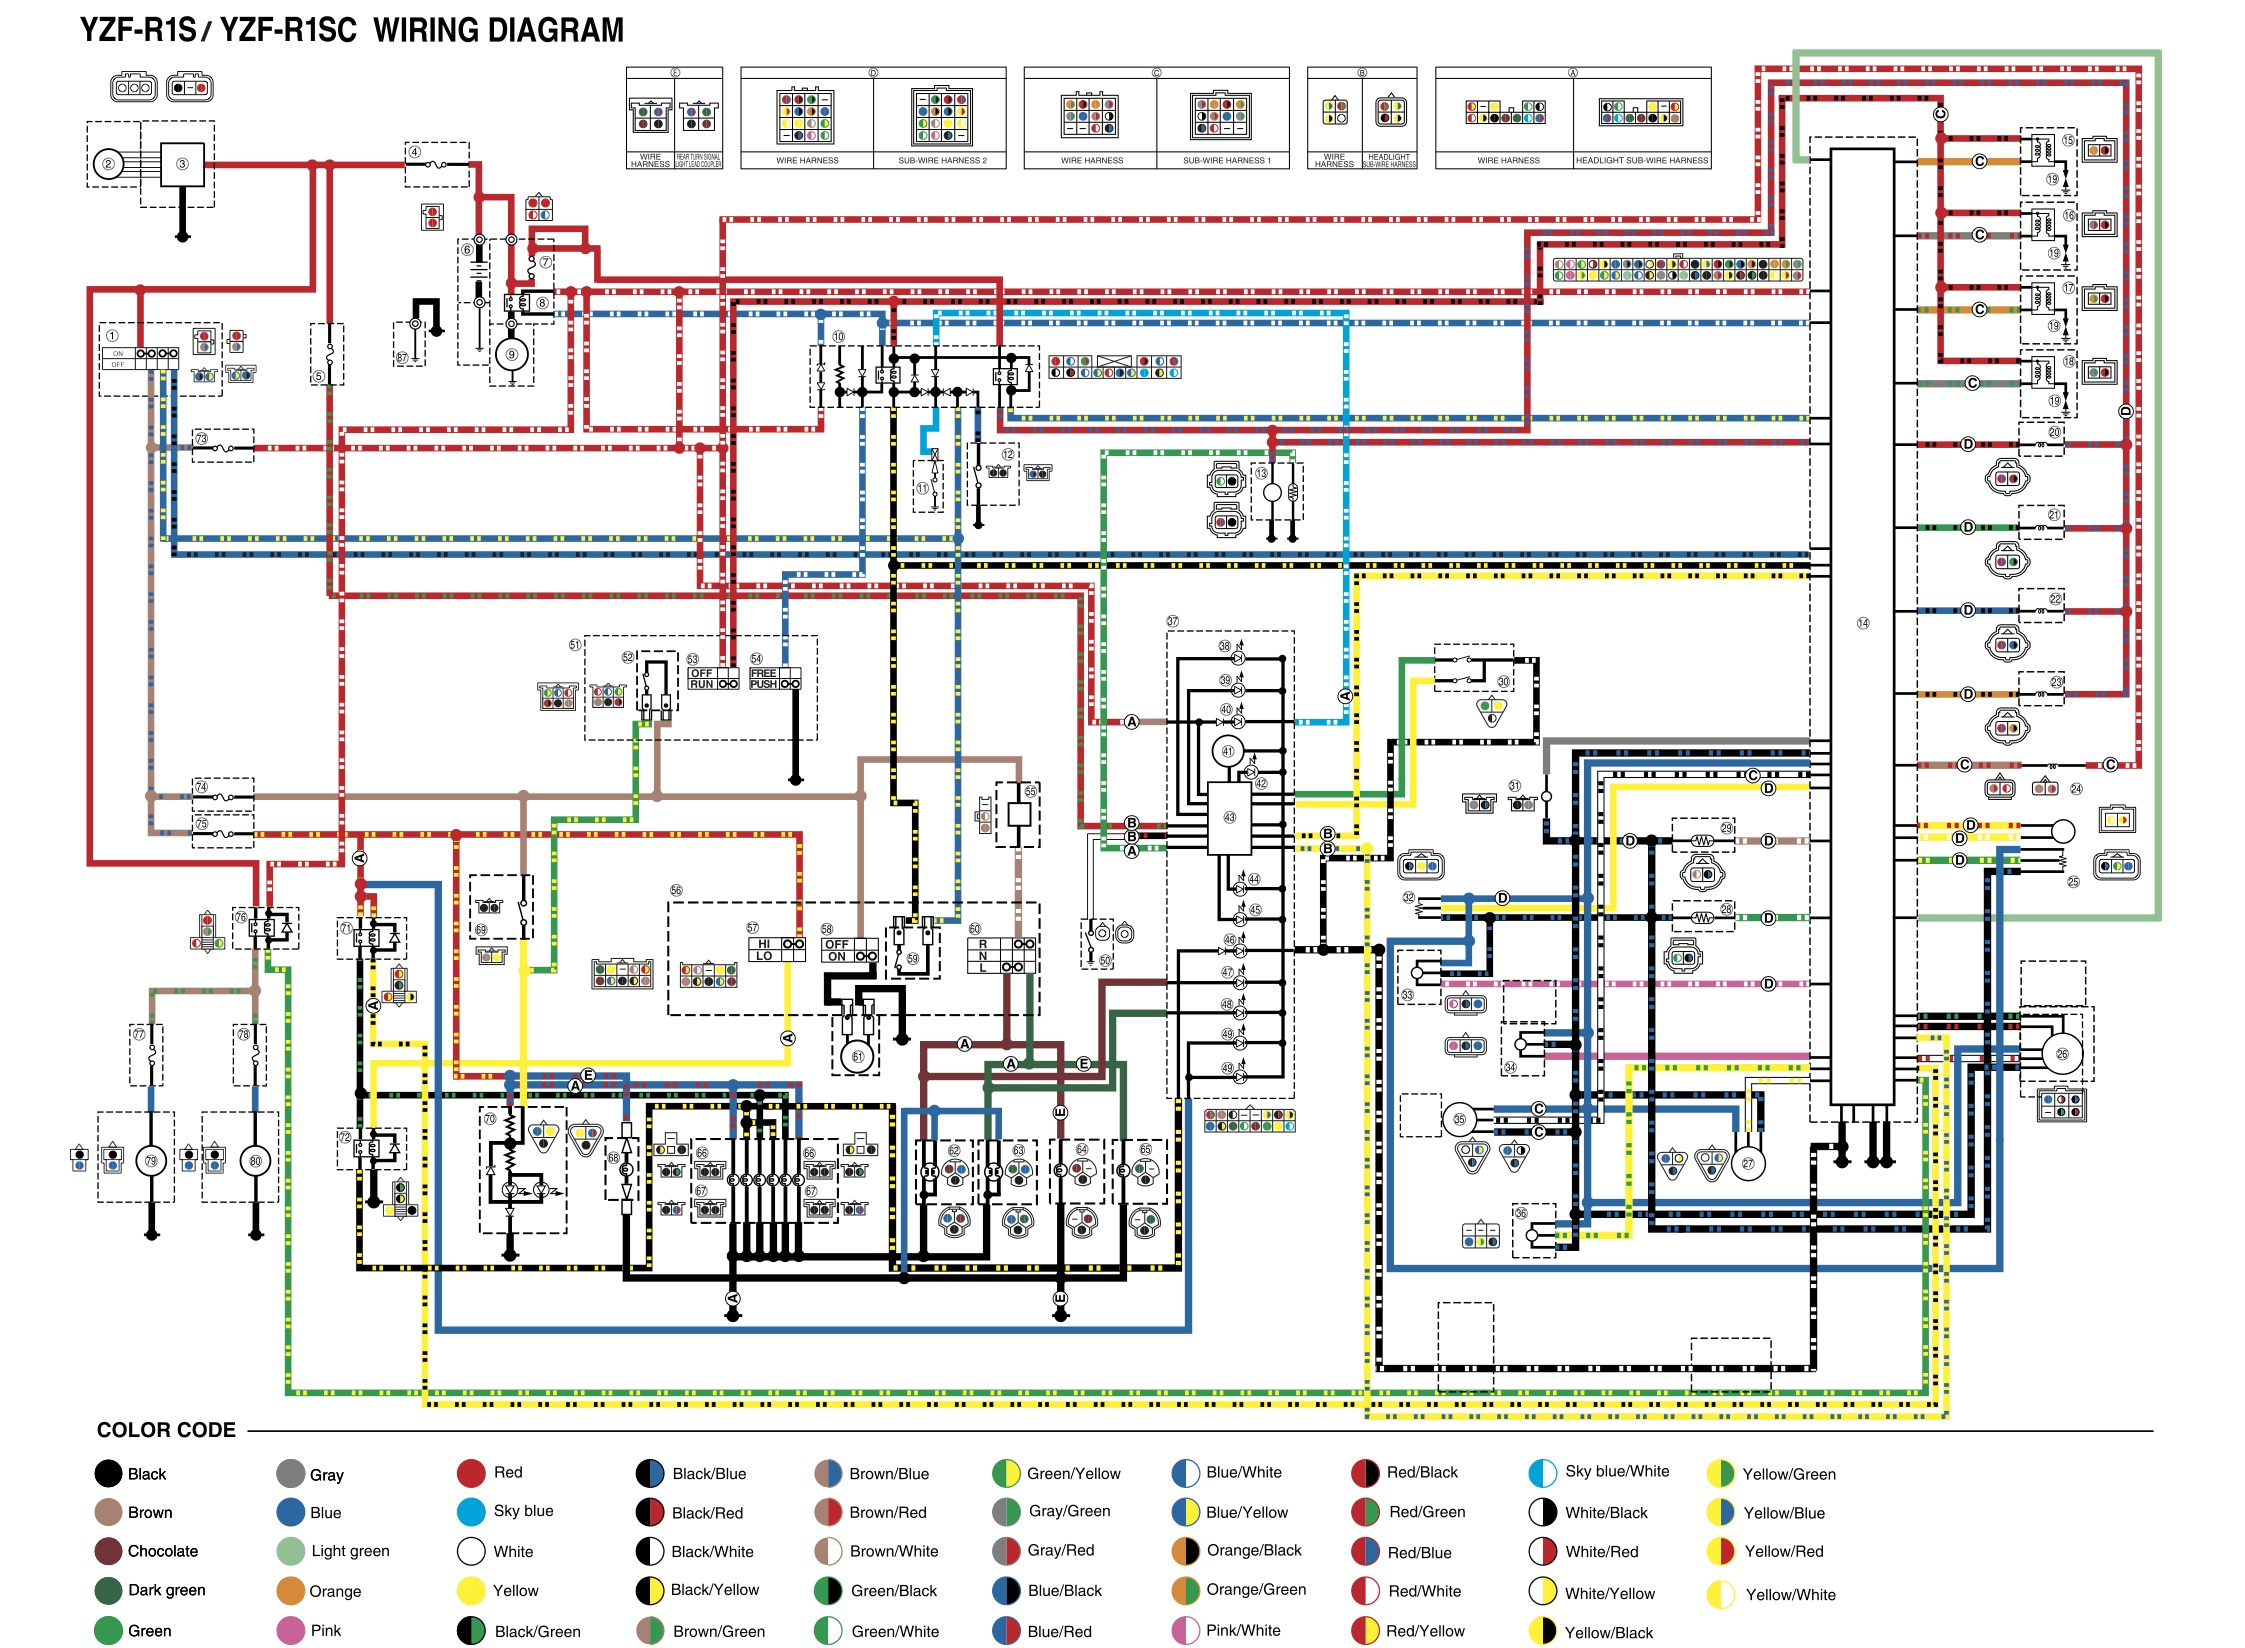 04R1_wiring_diagram r1 wiring help 2004 yamaha r6 headlight wiring diagrams at arjmand.co